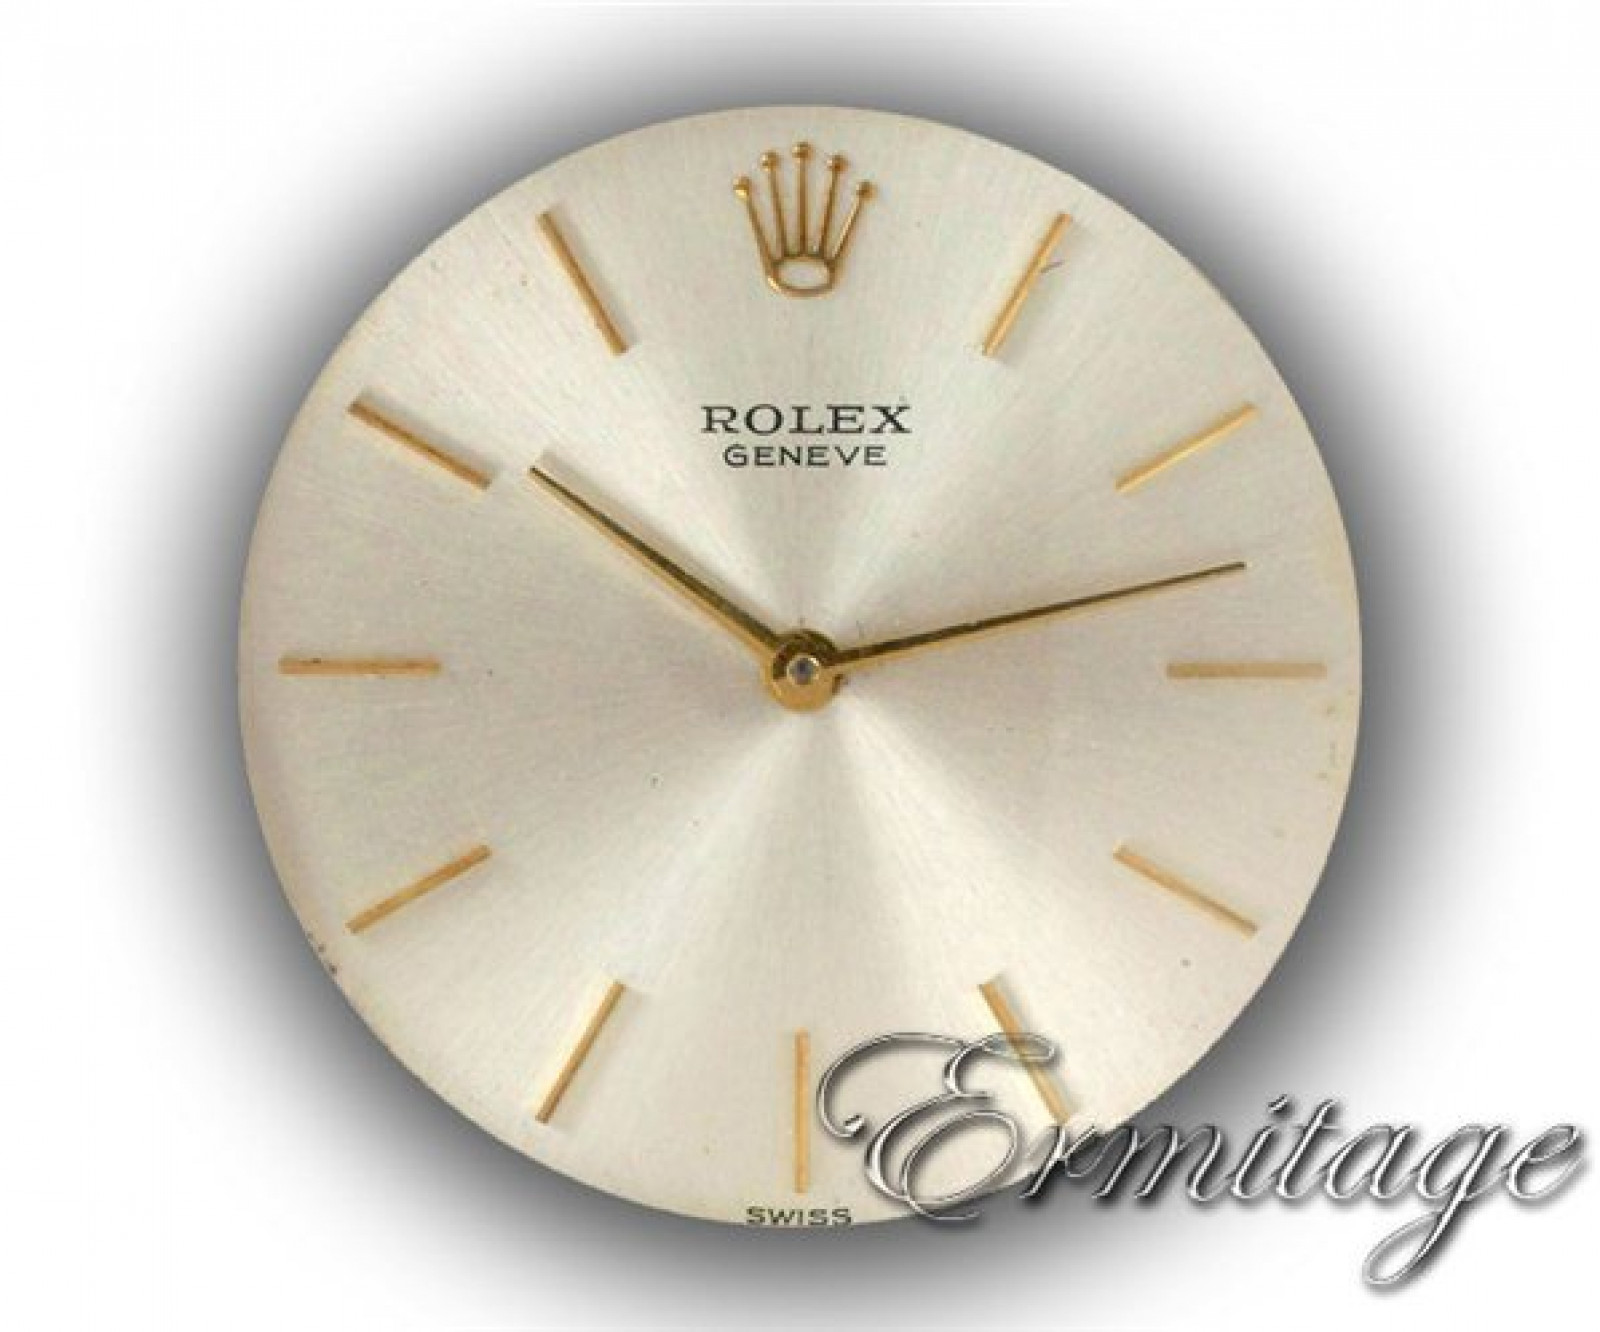 Vintage Rolex Geneva 3604 Gold with Silver Dial